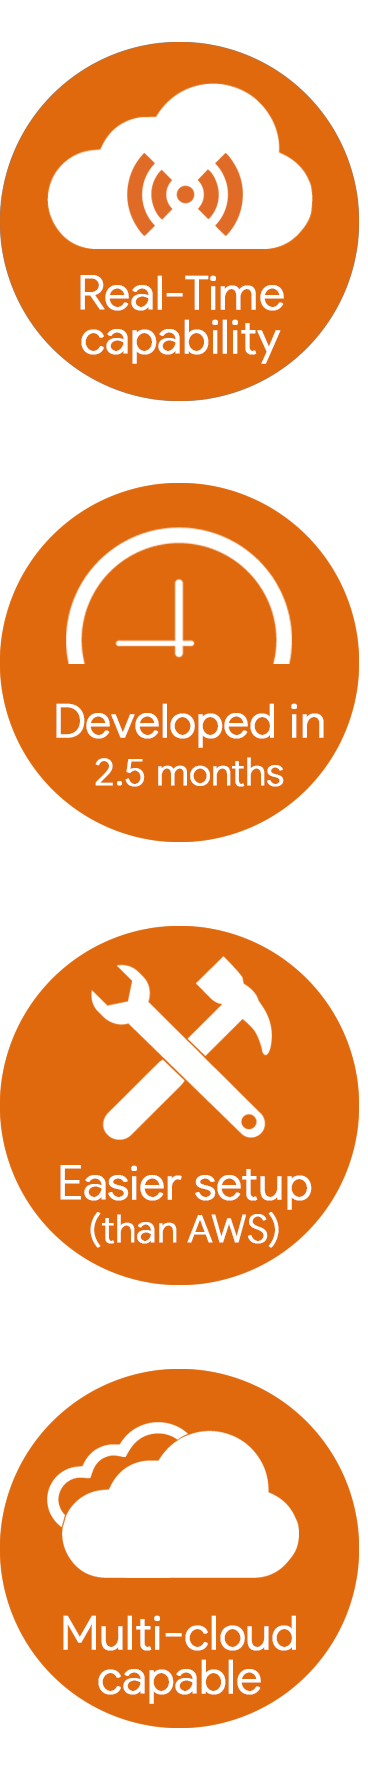 Badges highlighting real time capability, developed in 2.5 months, easier setup than AWS and multi-cloud capable.